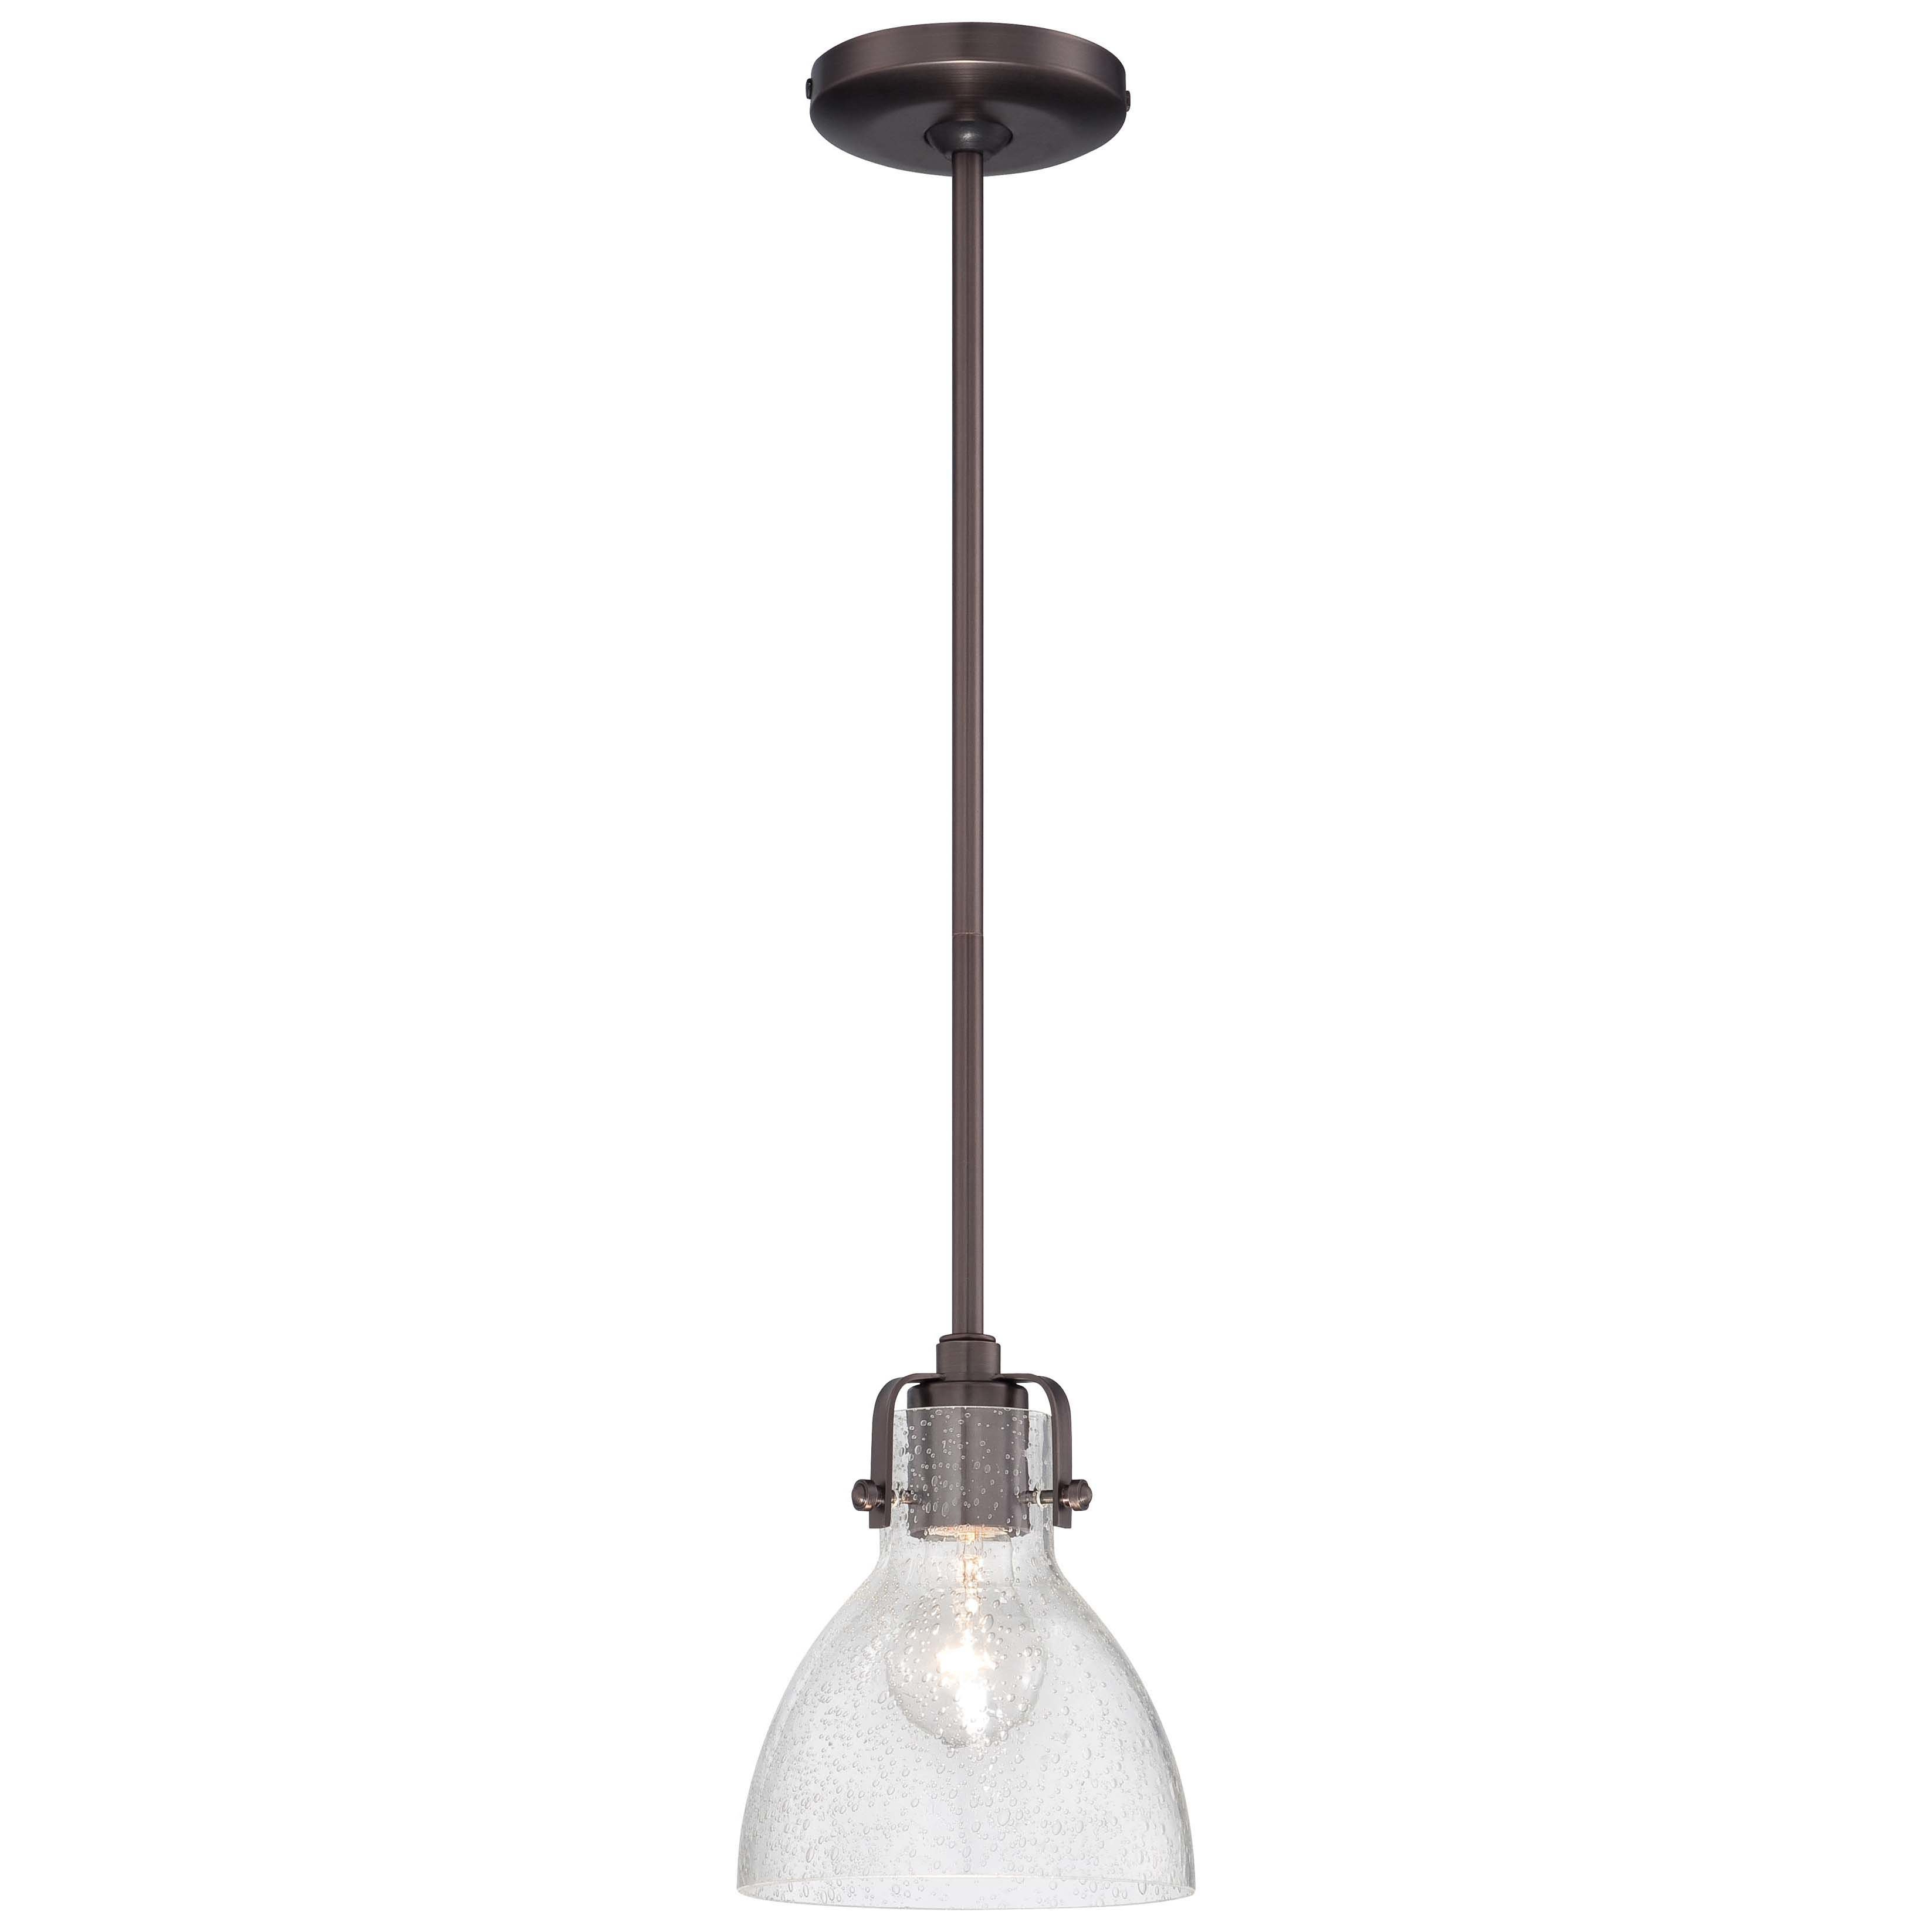 Newest Houon 1 Light Cone Bell Pendants Inside Goldie 1 Light Single Bell Pendant (Gallery 5 of 20)